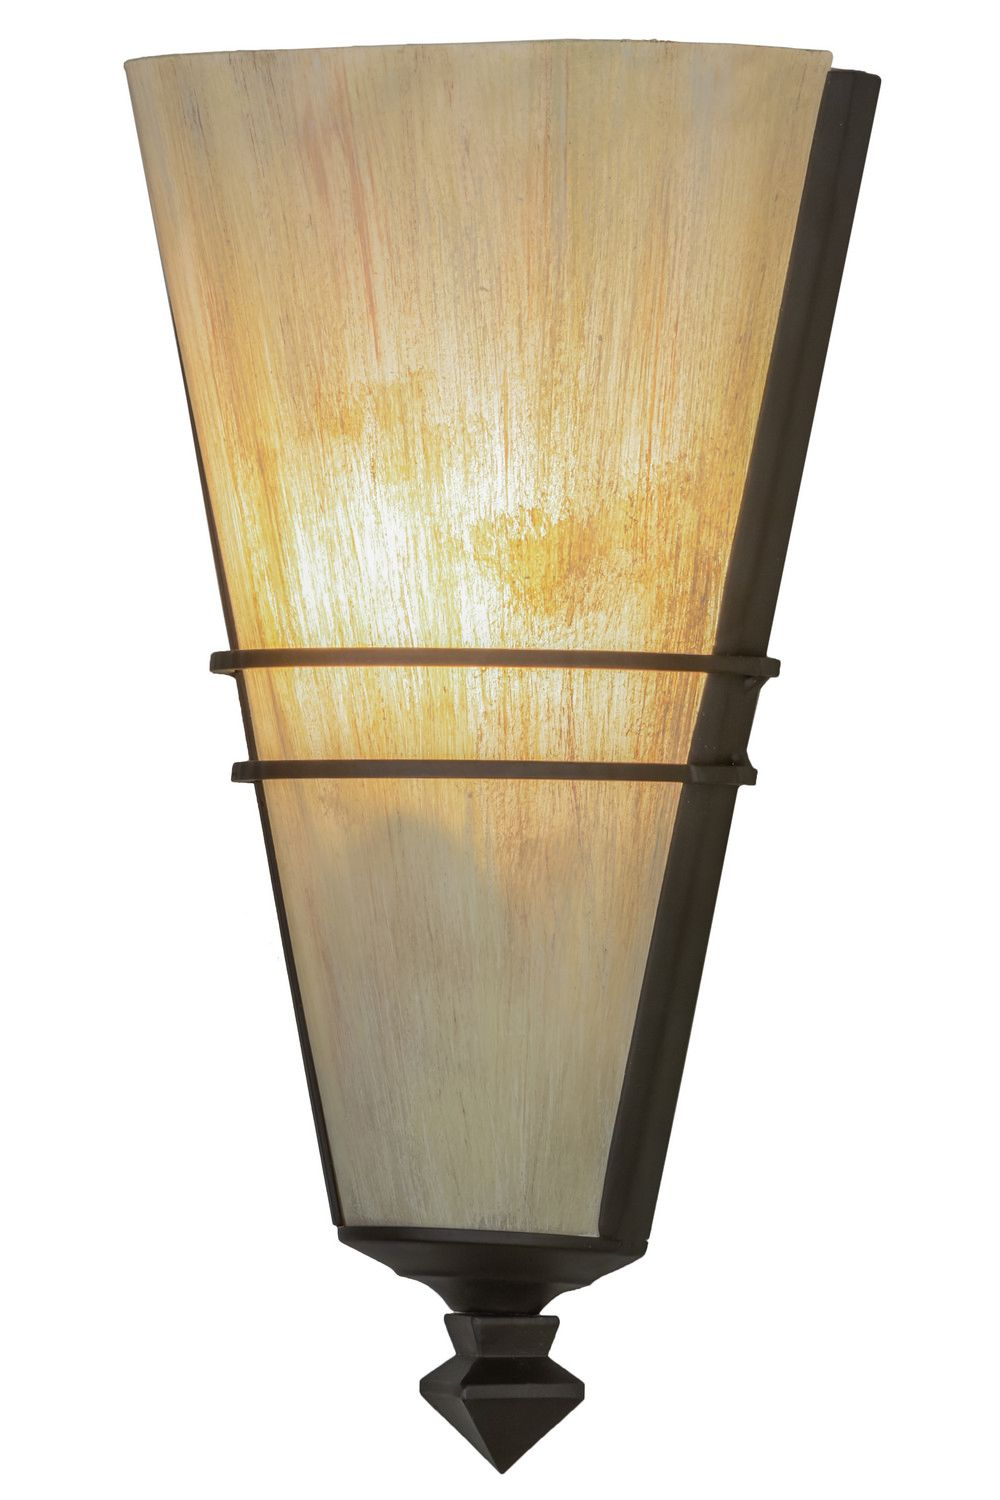 Led Wall Sconce | Art Deco Movie Theater | Pinterest | Led wall ...